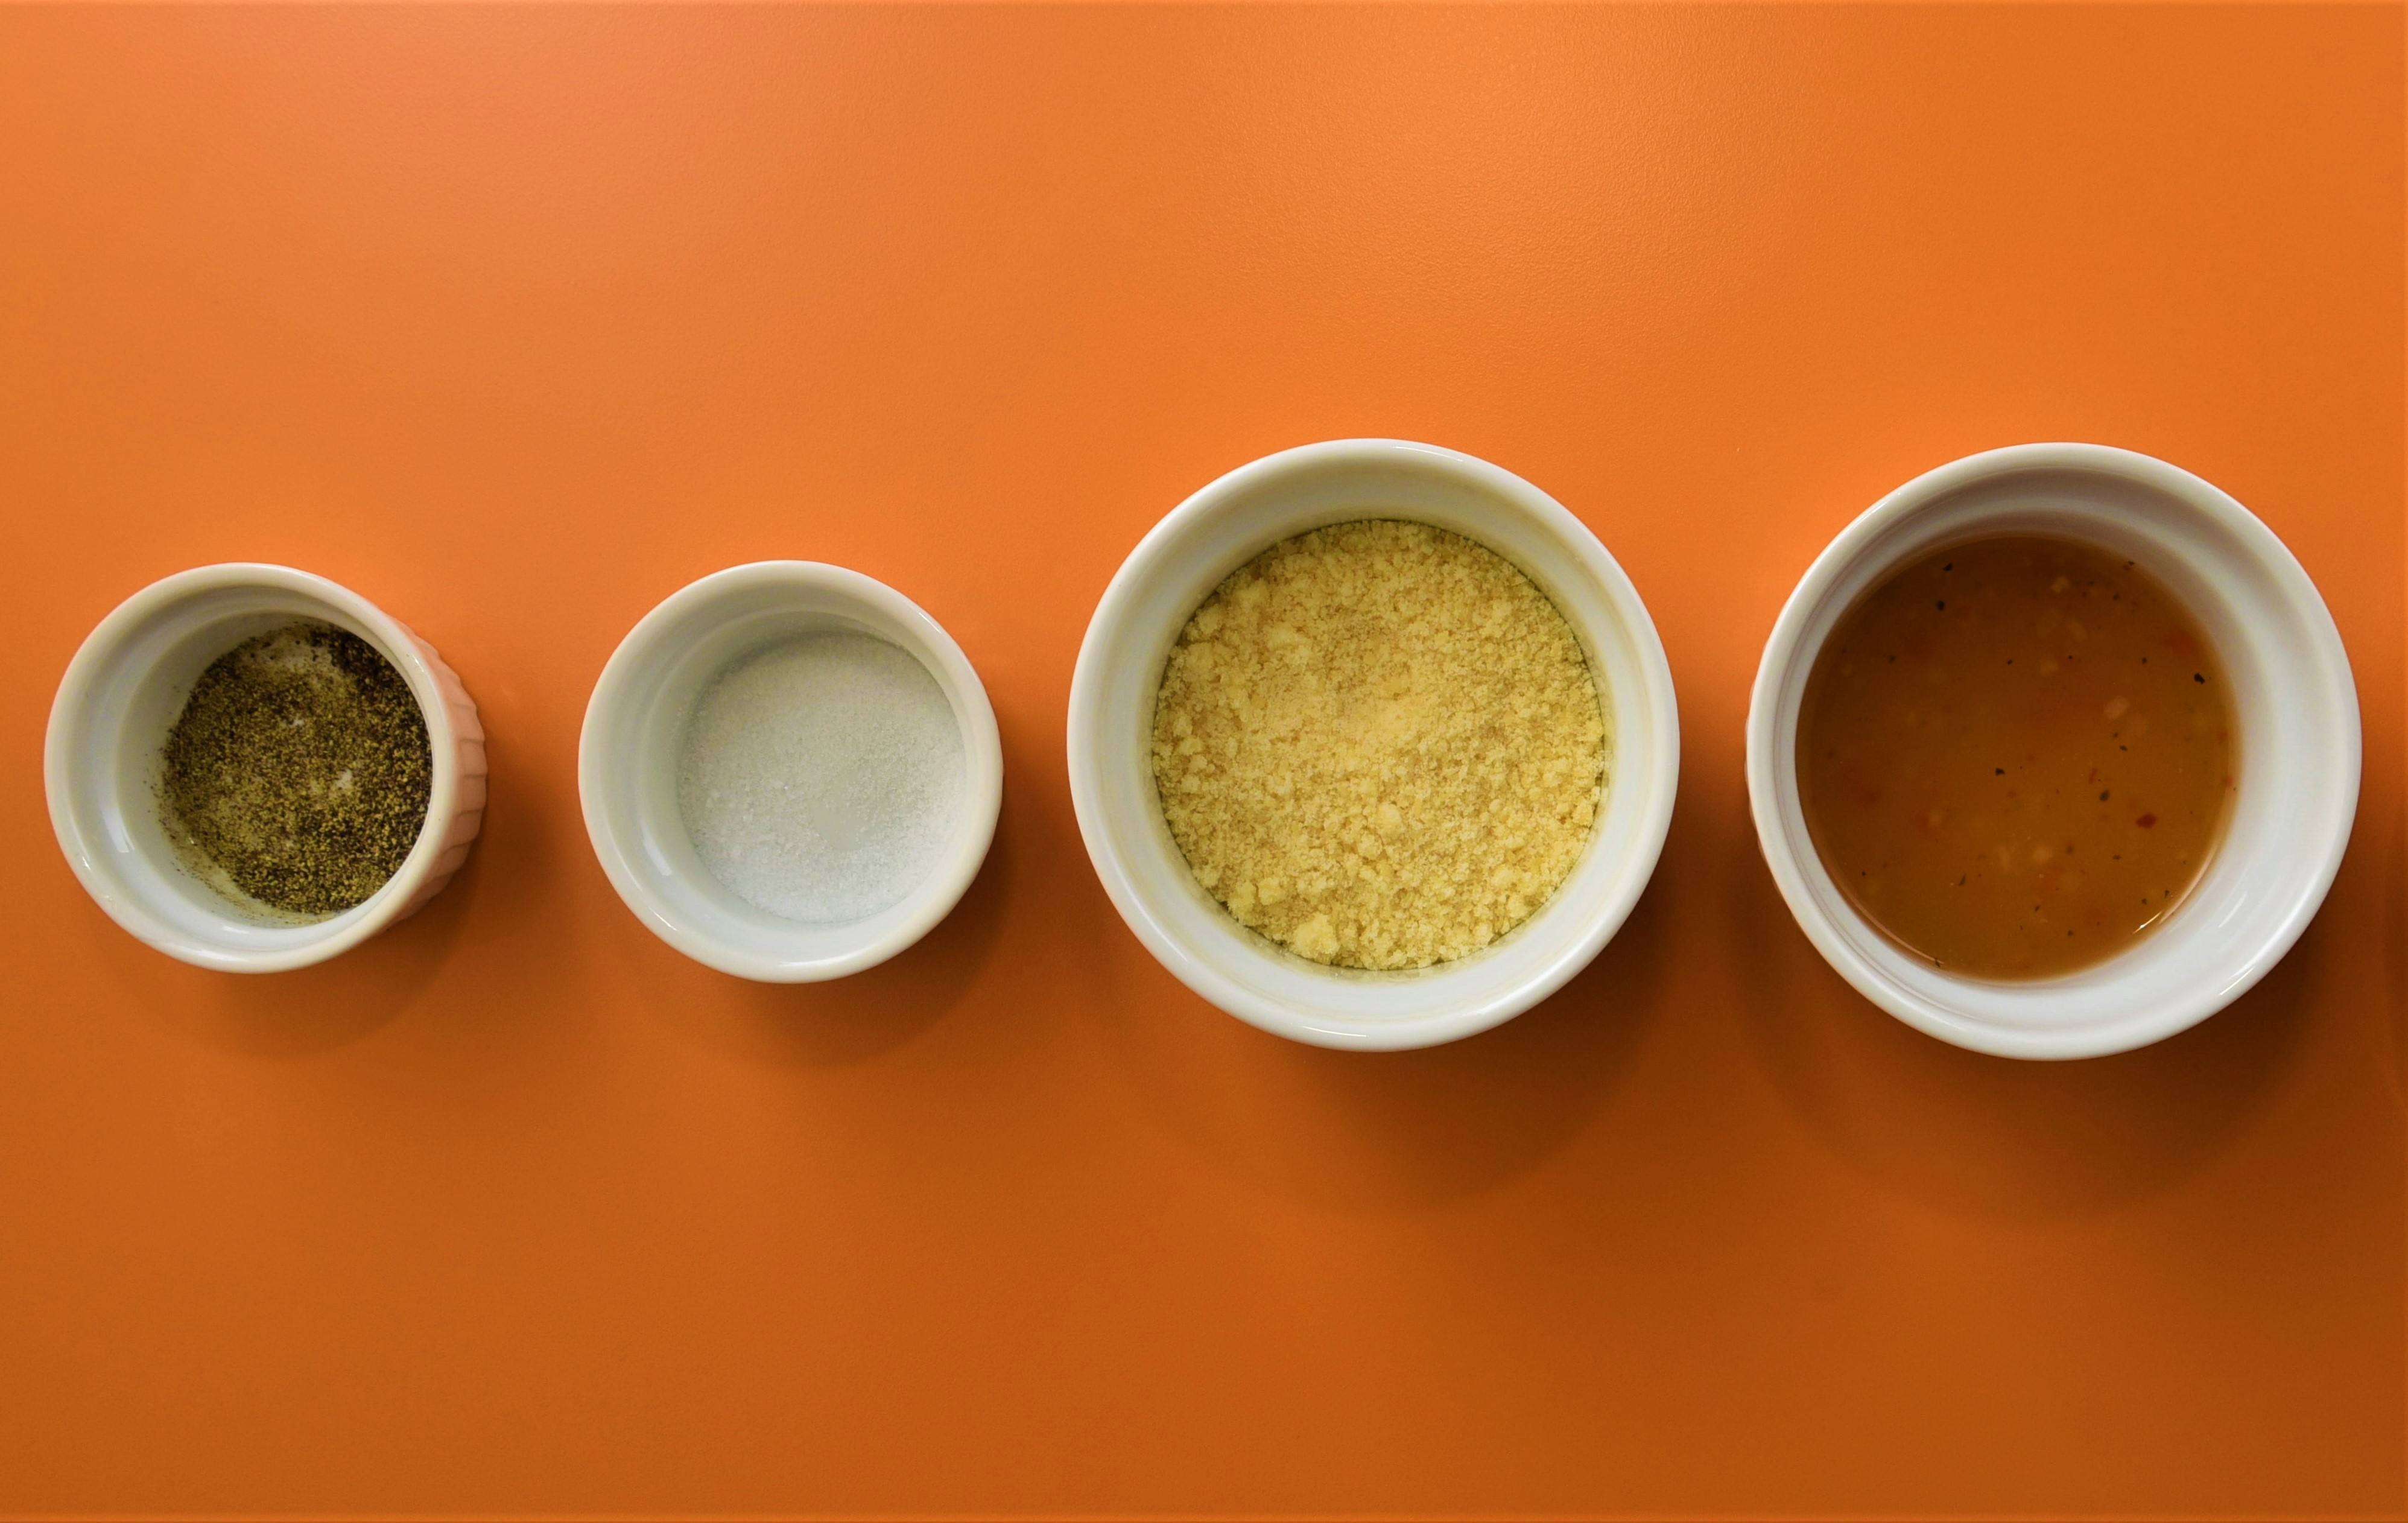 A different herb or spice in five bowls.